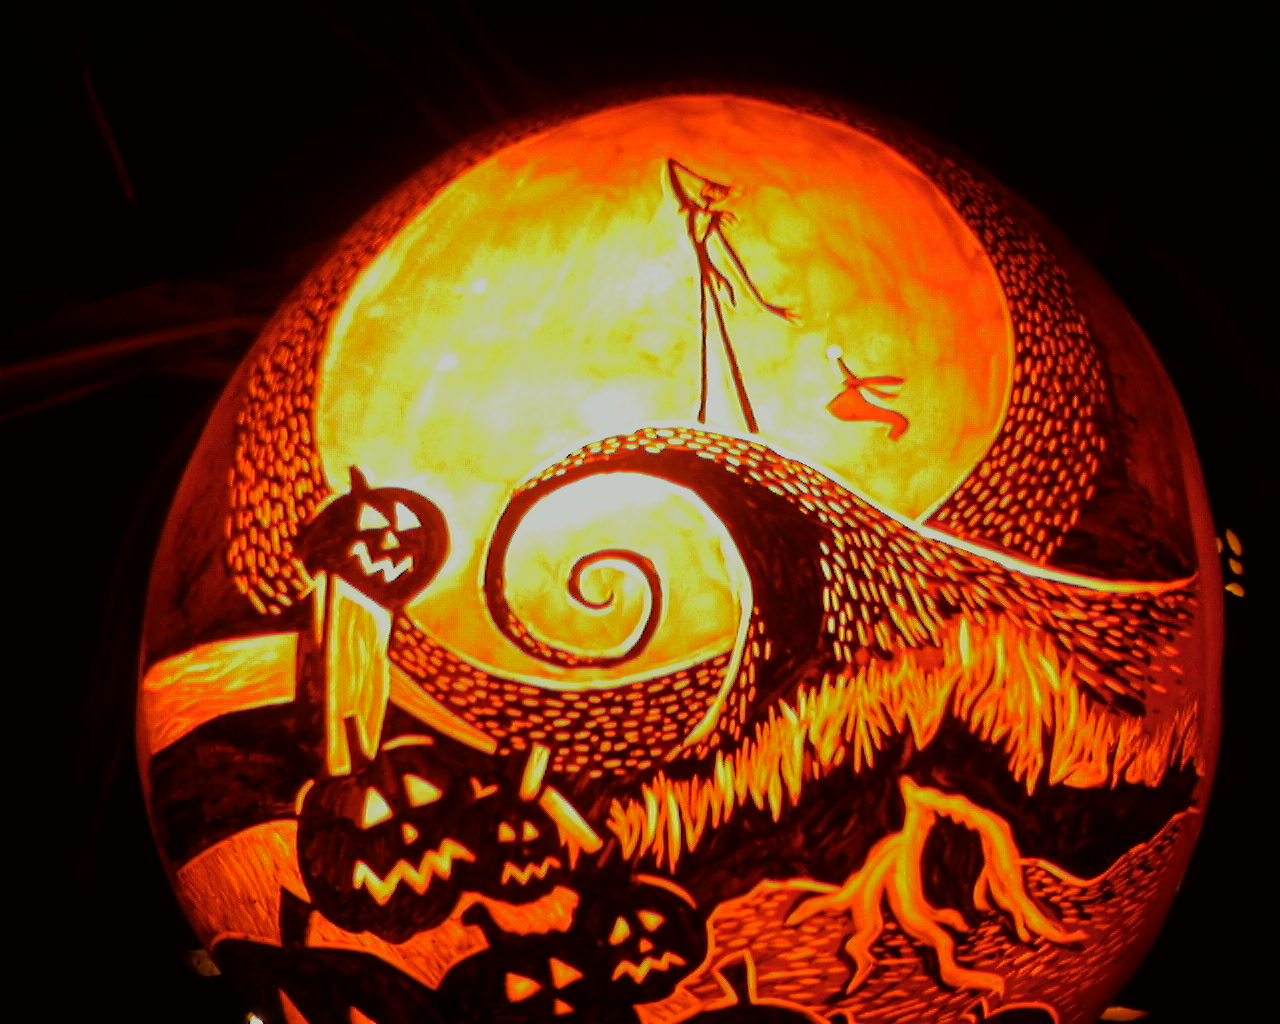 Nightmare Before Christmas Pumpkin Carving Christmas